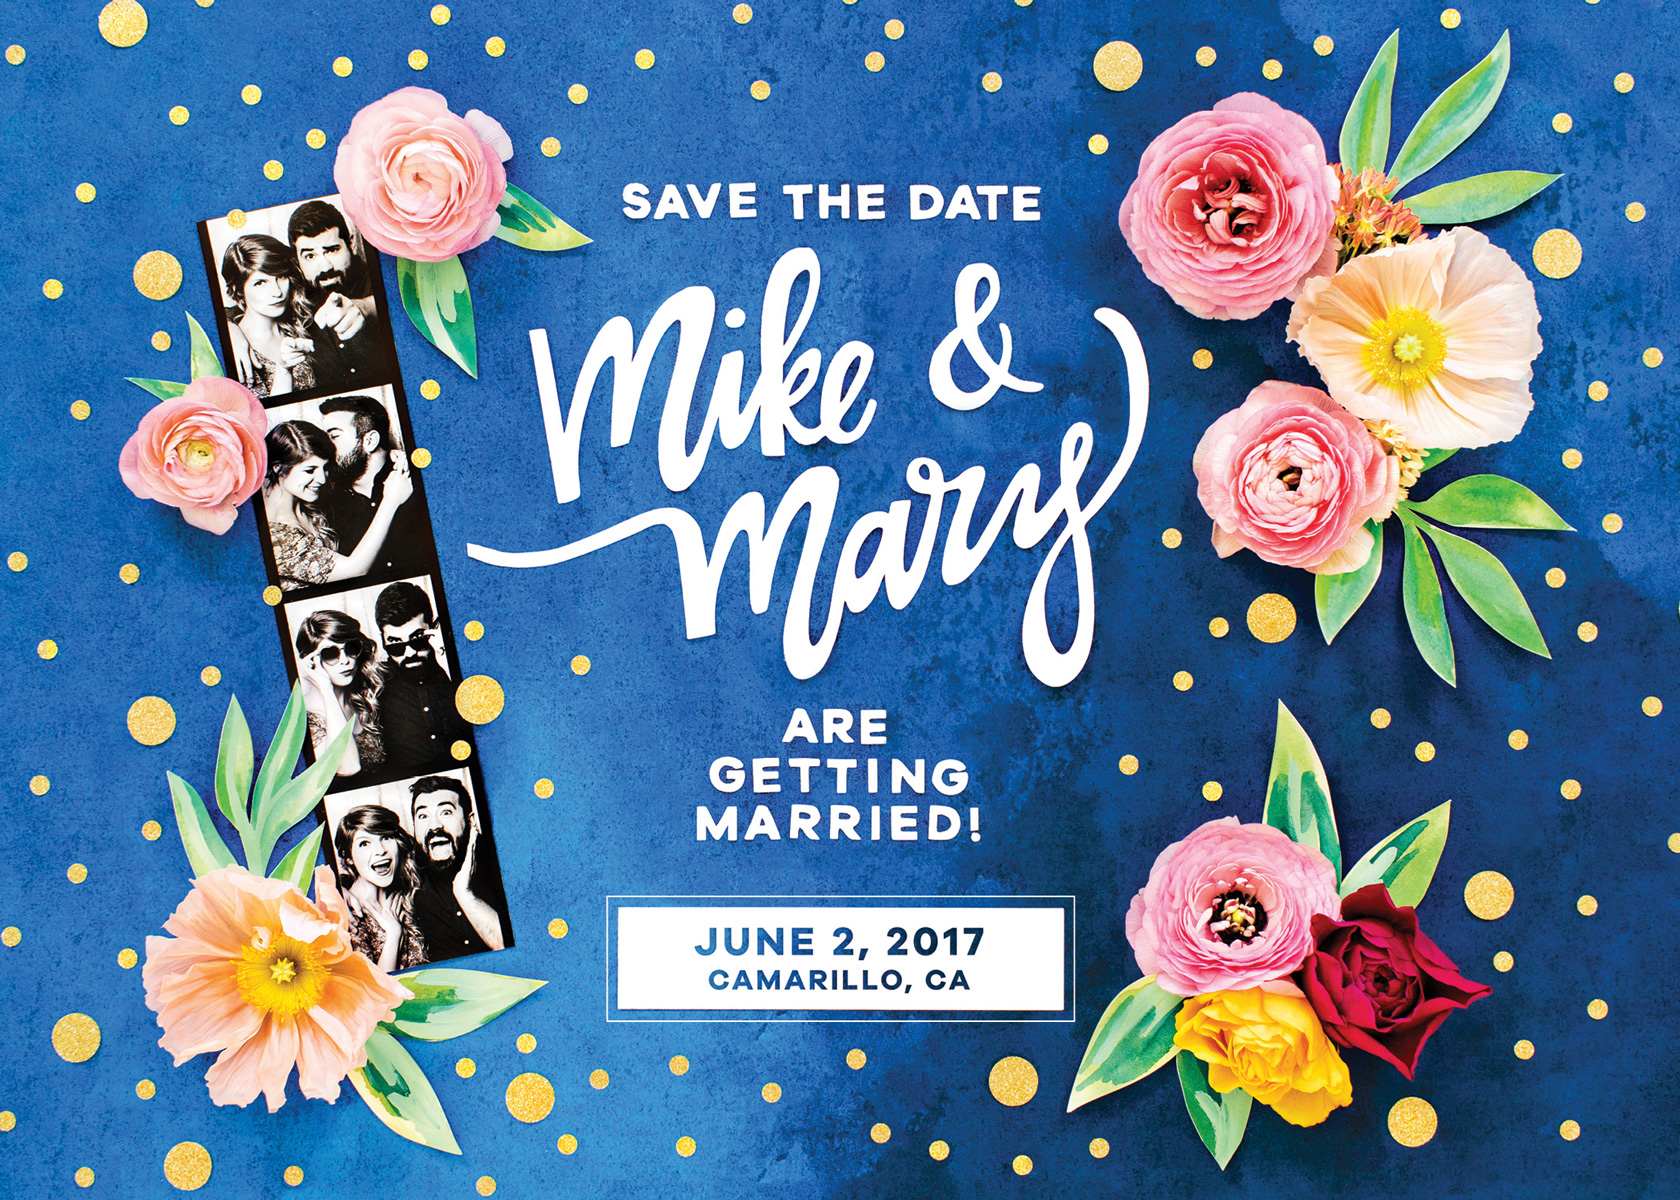 MikeAndMary_SaveTheDate_Postcard_v4.jpg